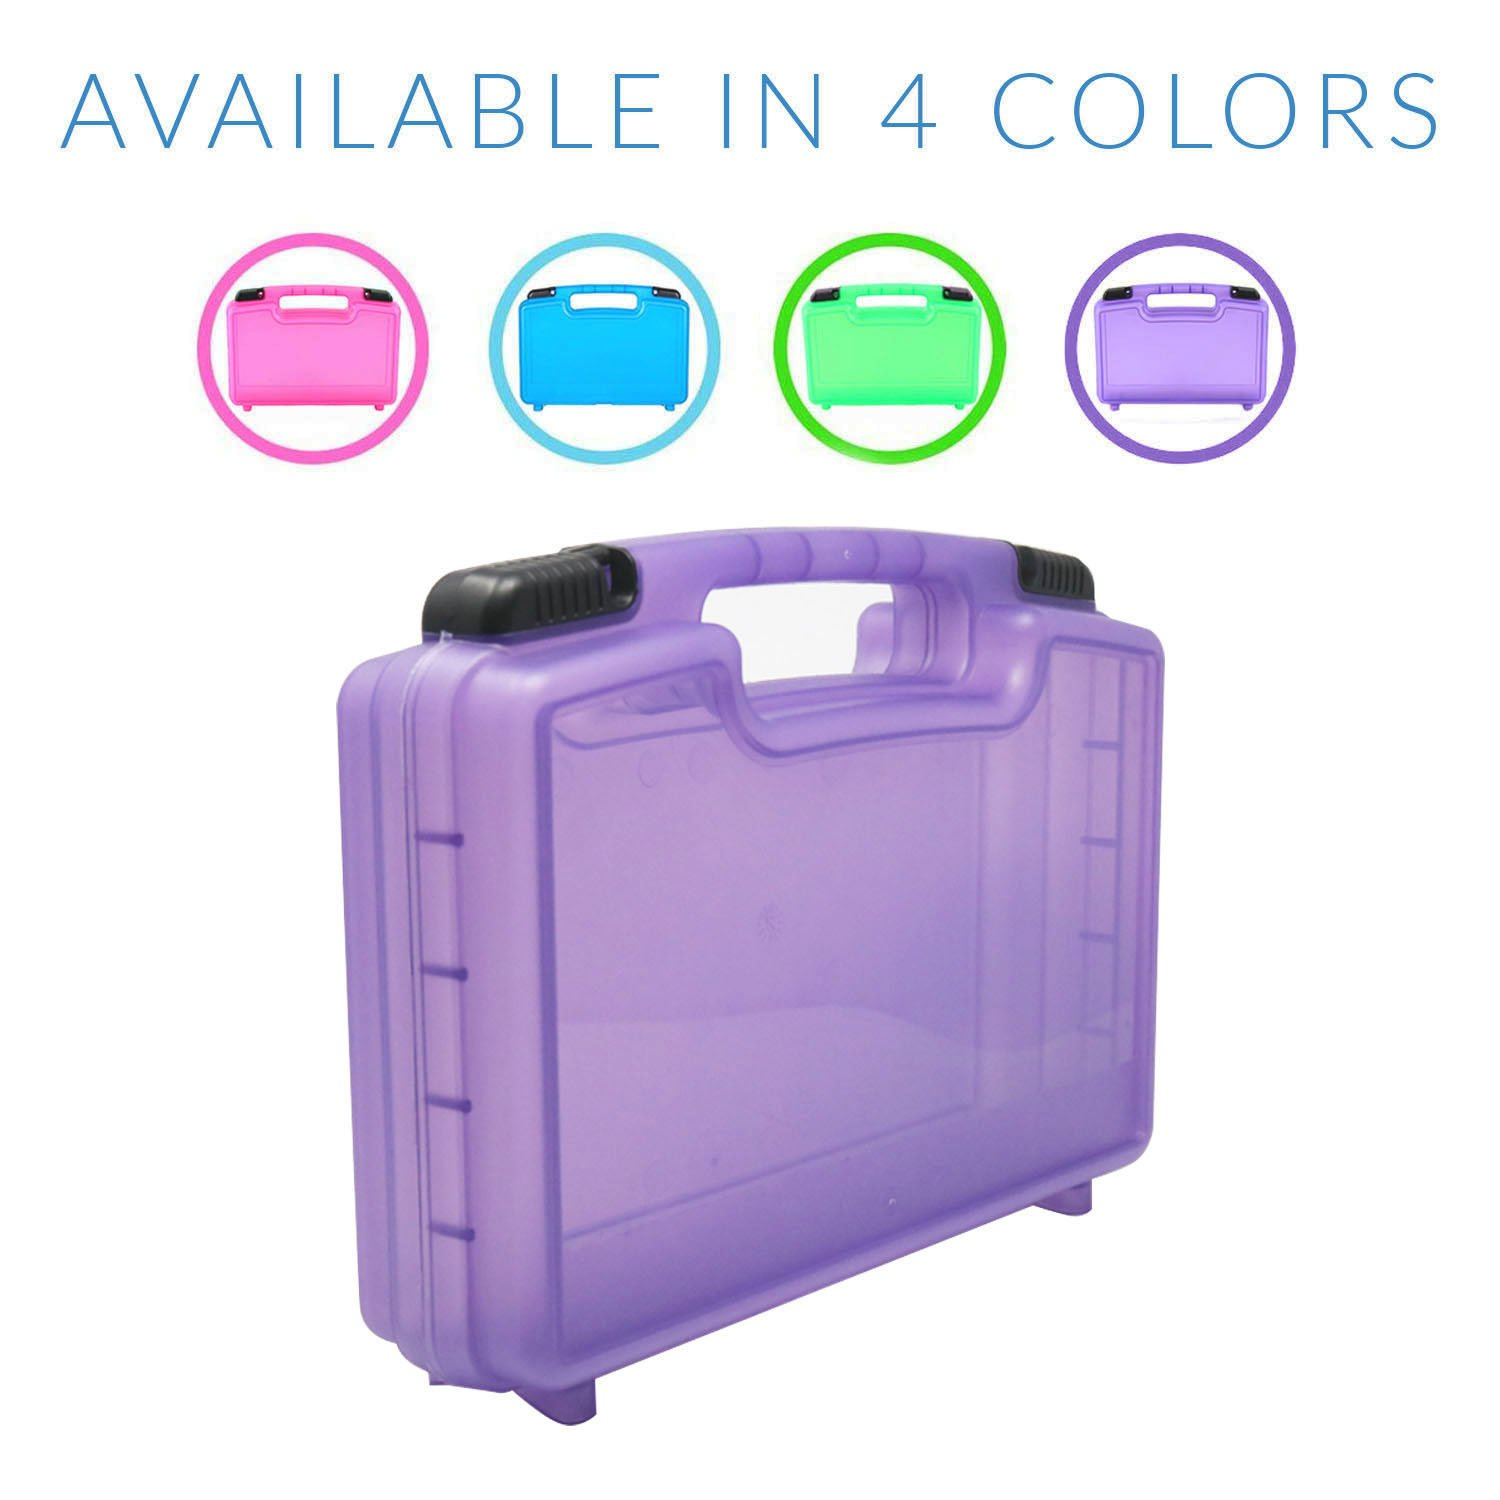 Life Made Better Little People Toy Storage Carrying Box Mini Figure Organizer Stores Figurines and Accessories Purple lmb